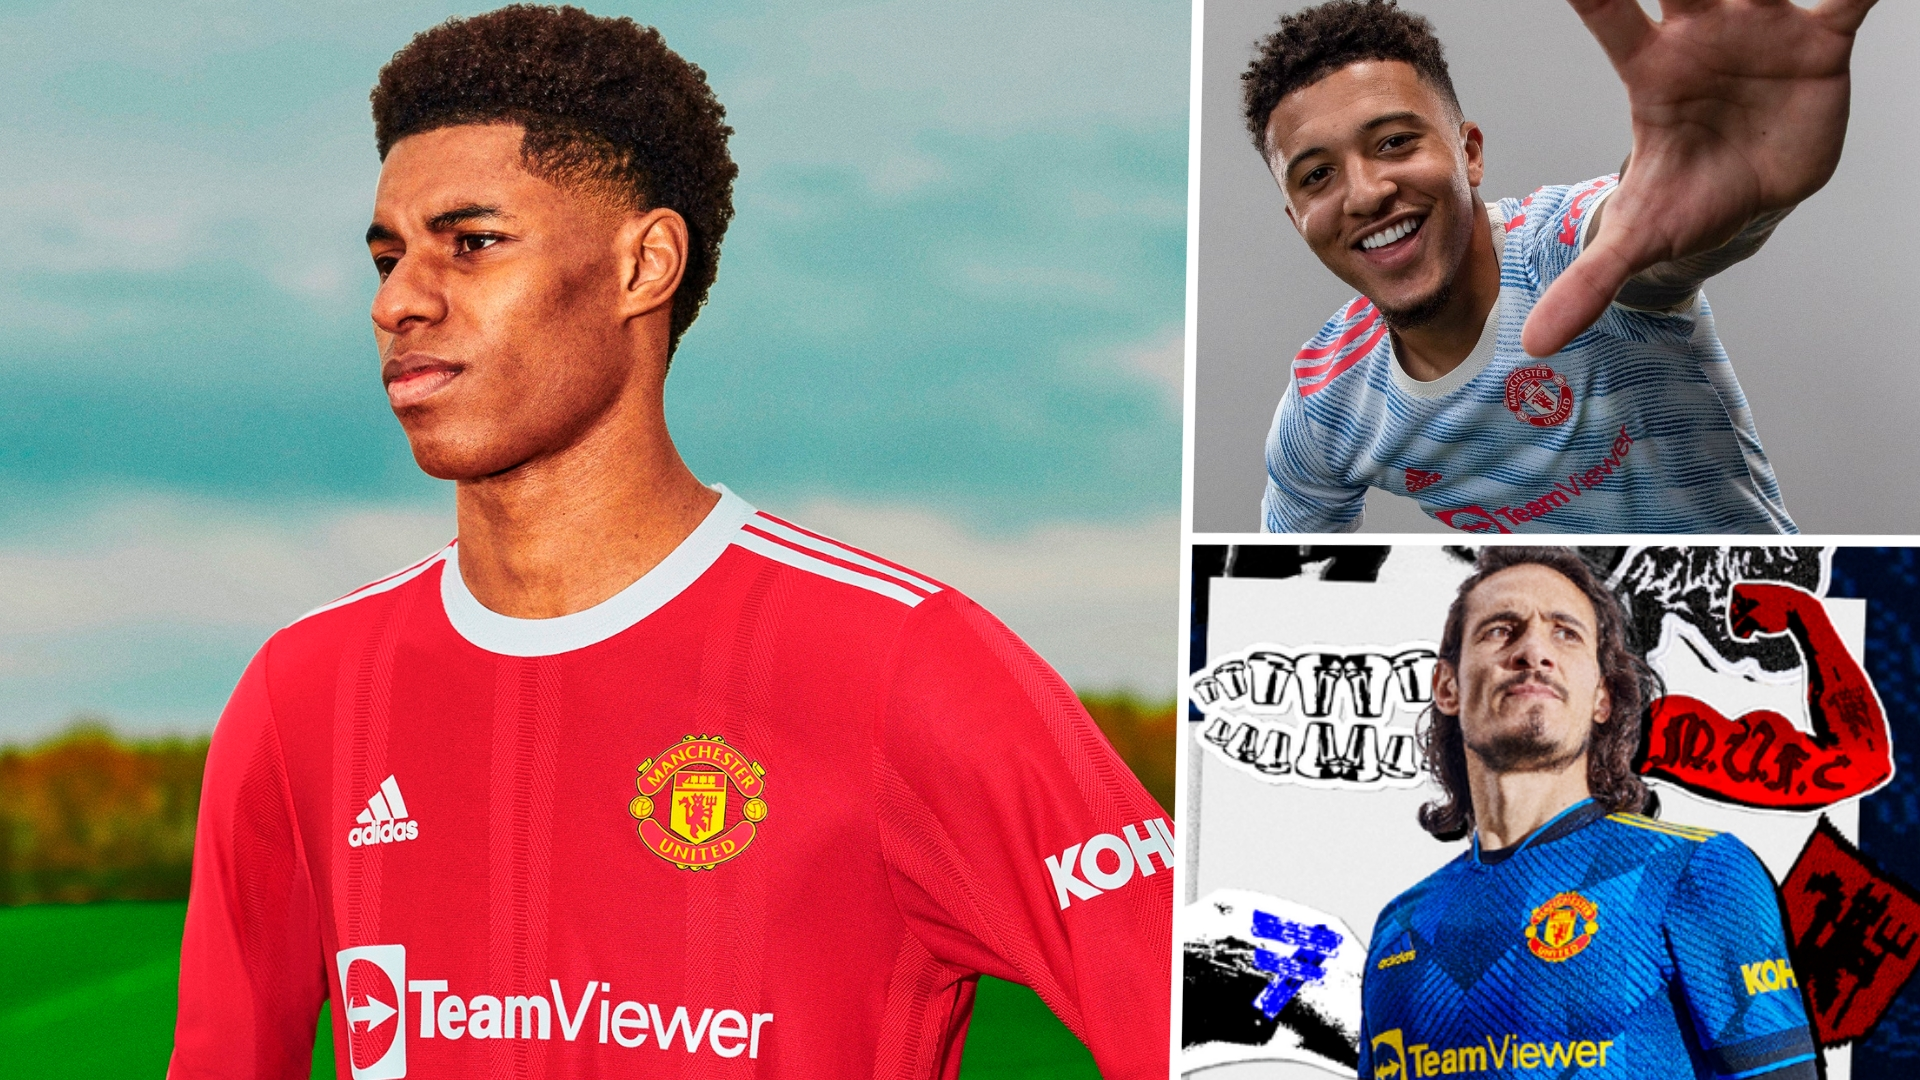 manchester-united-2021-2022-kits-and-logo-dream-league-soccer-2021-kits